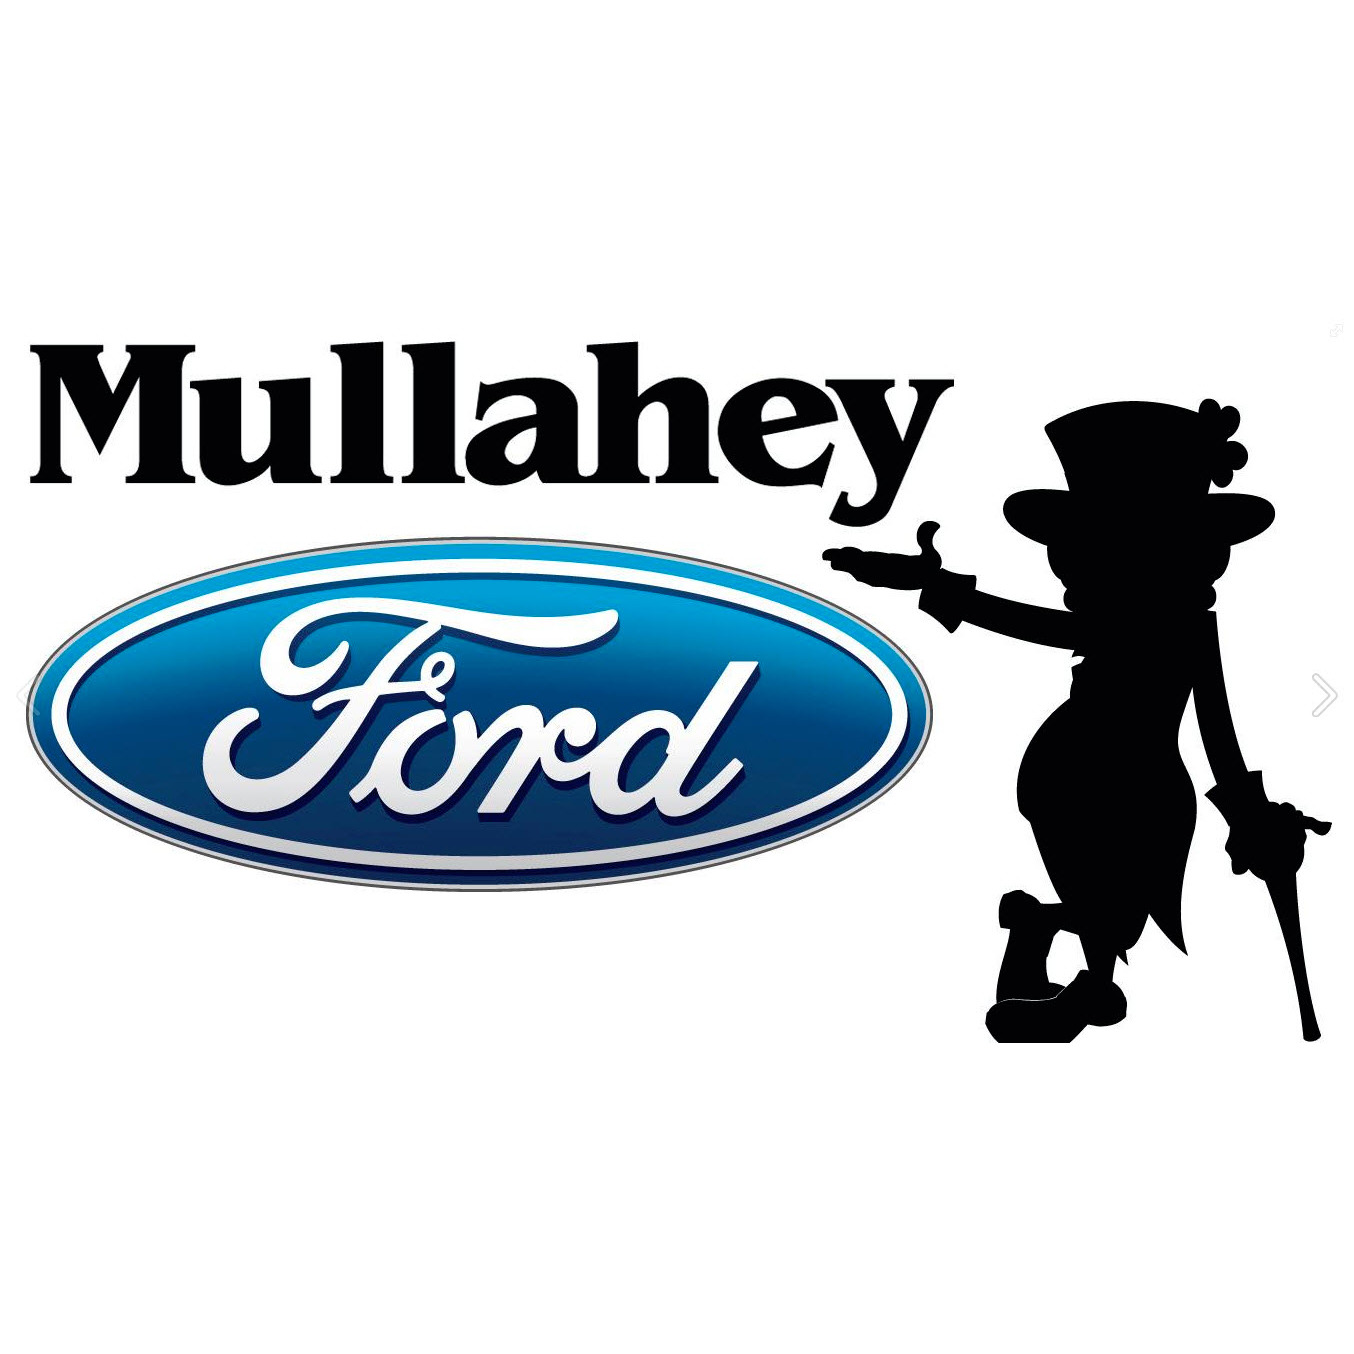 image of Mullahey Ford